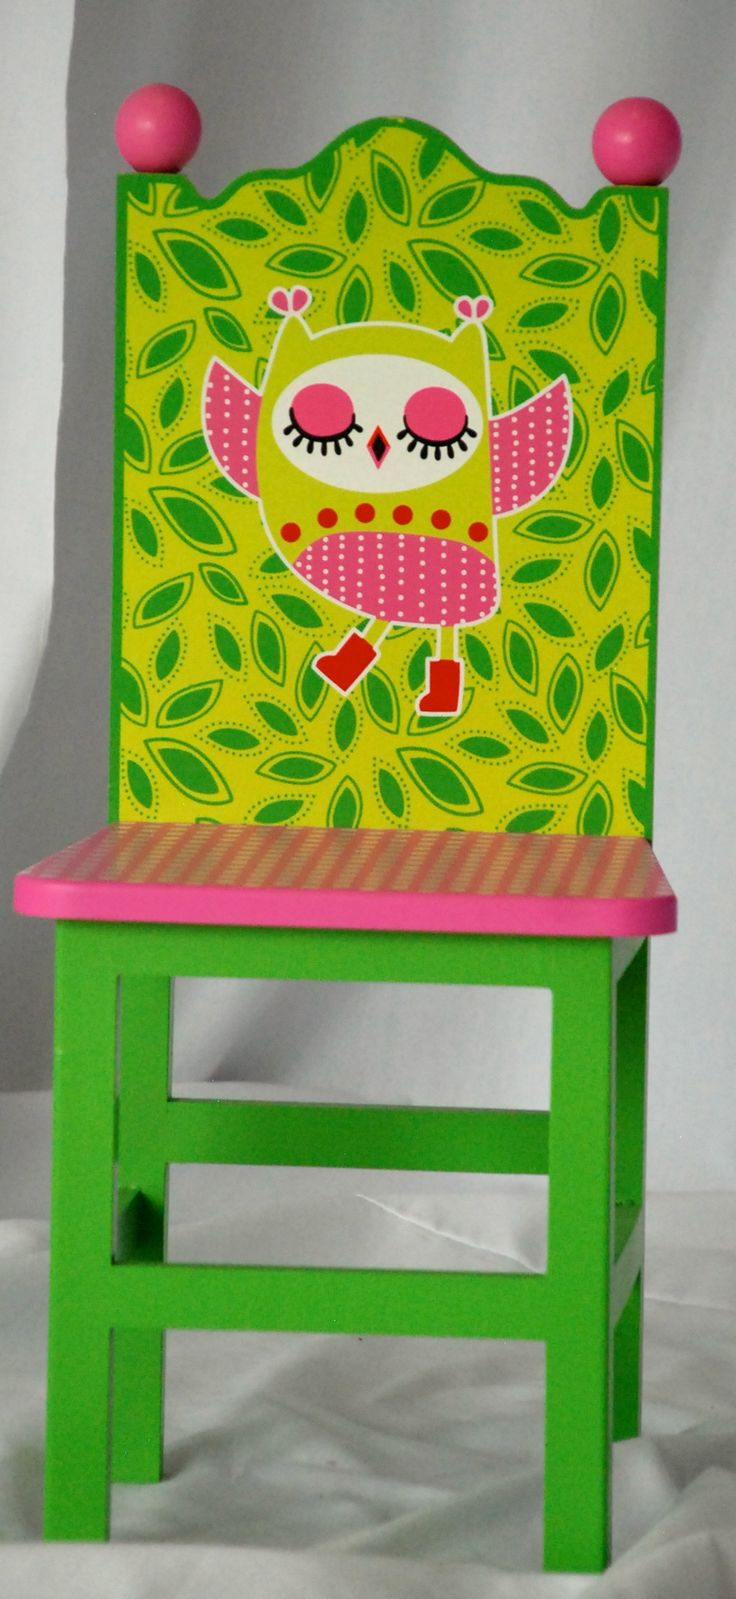 Child Chair  - Green with Pink - Painted Owl